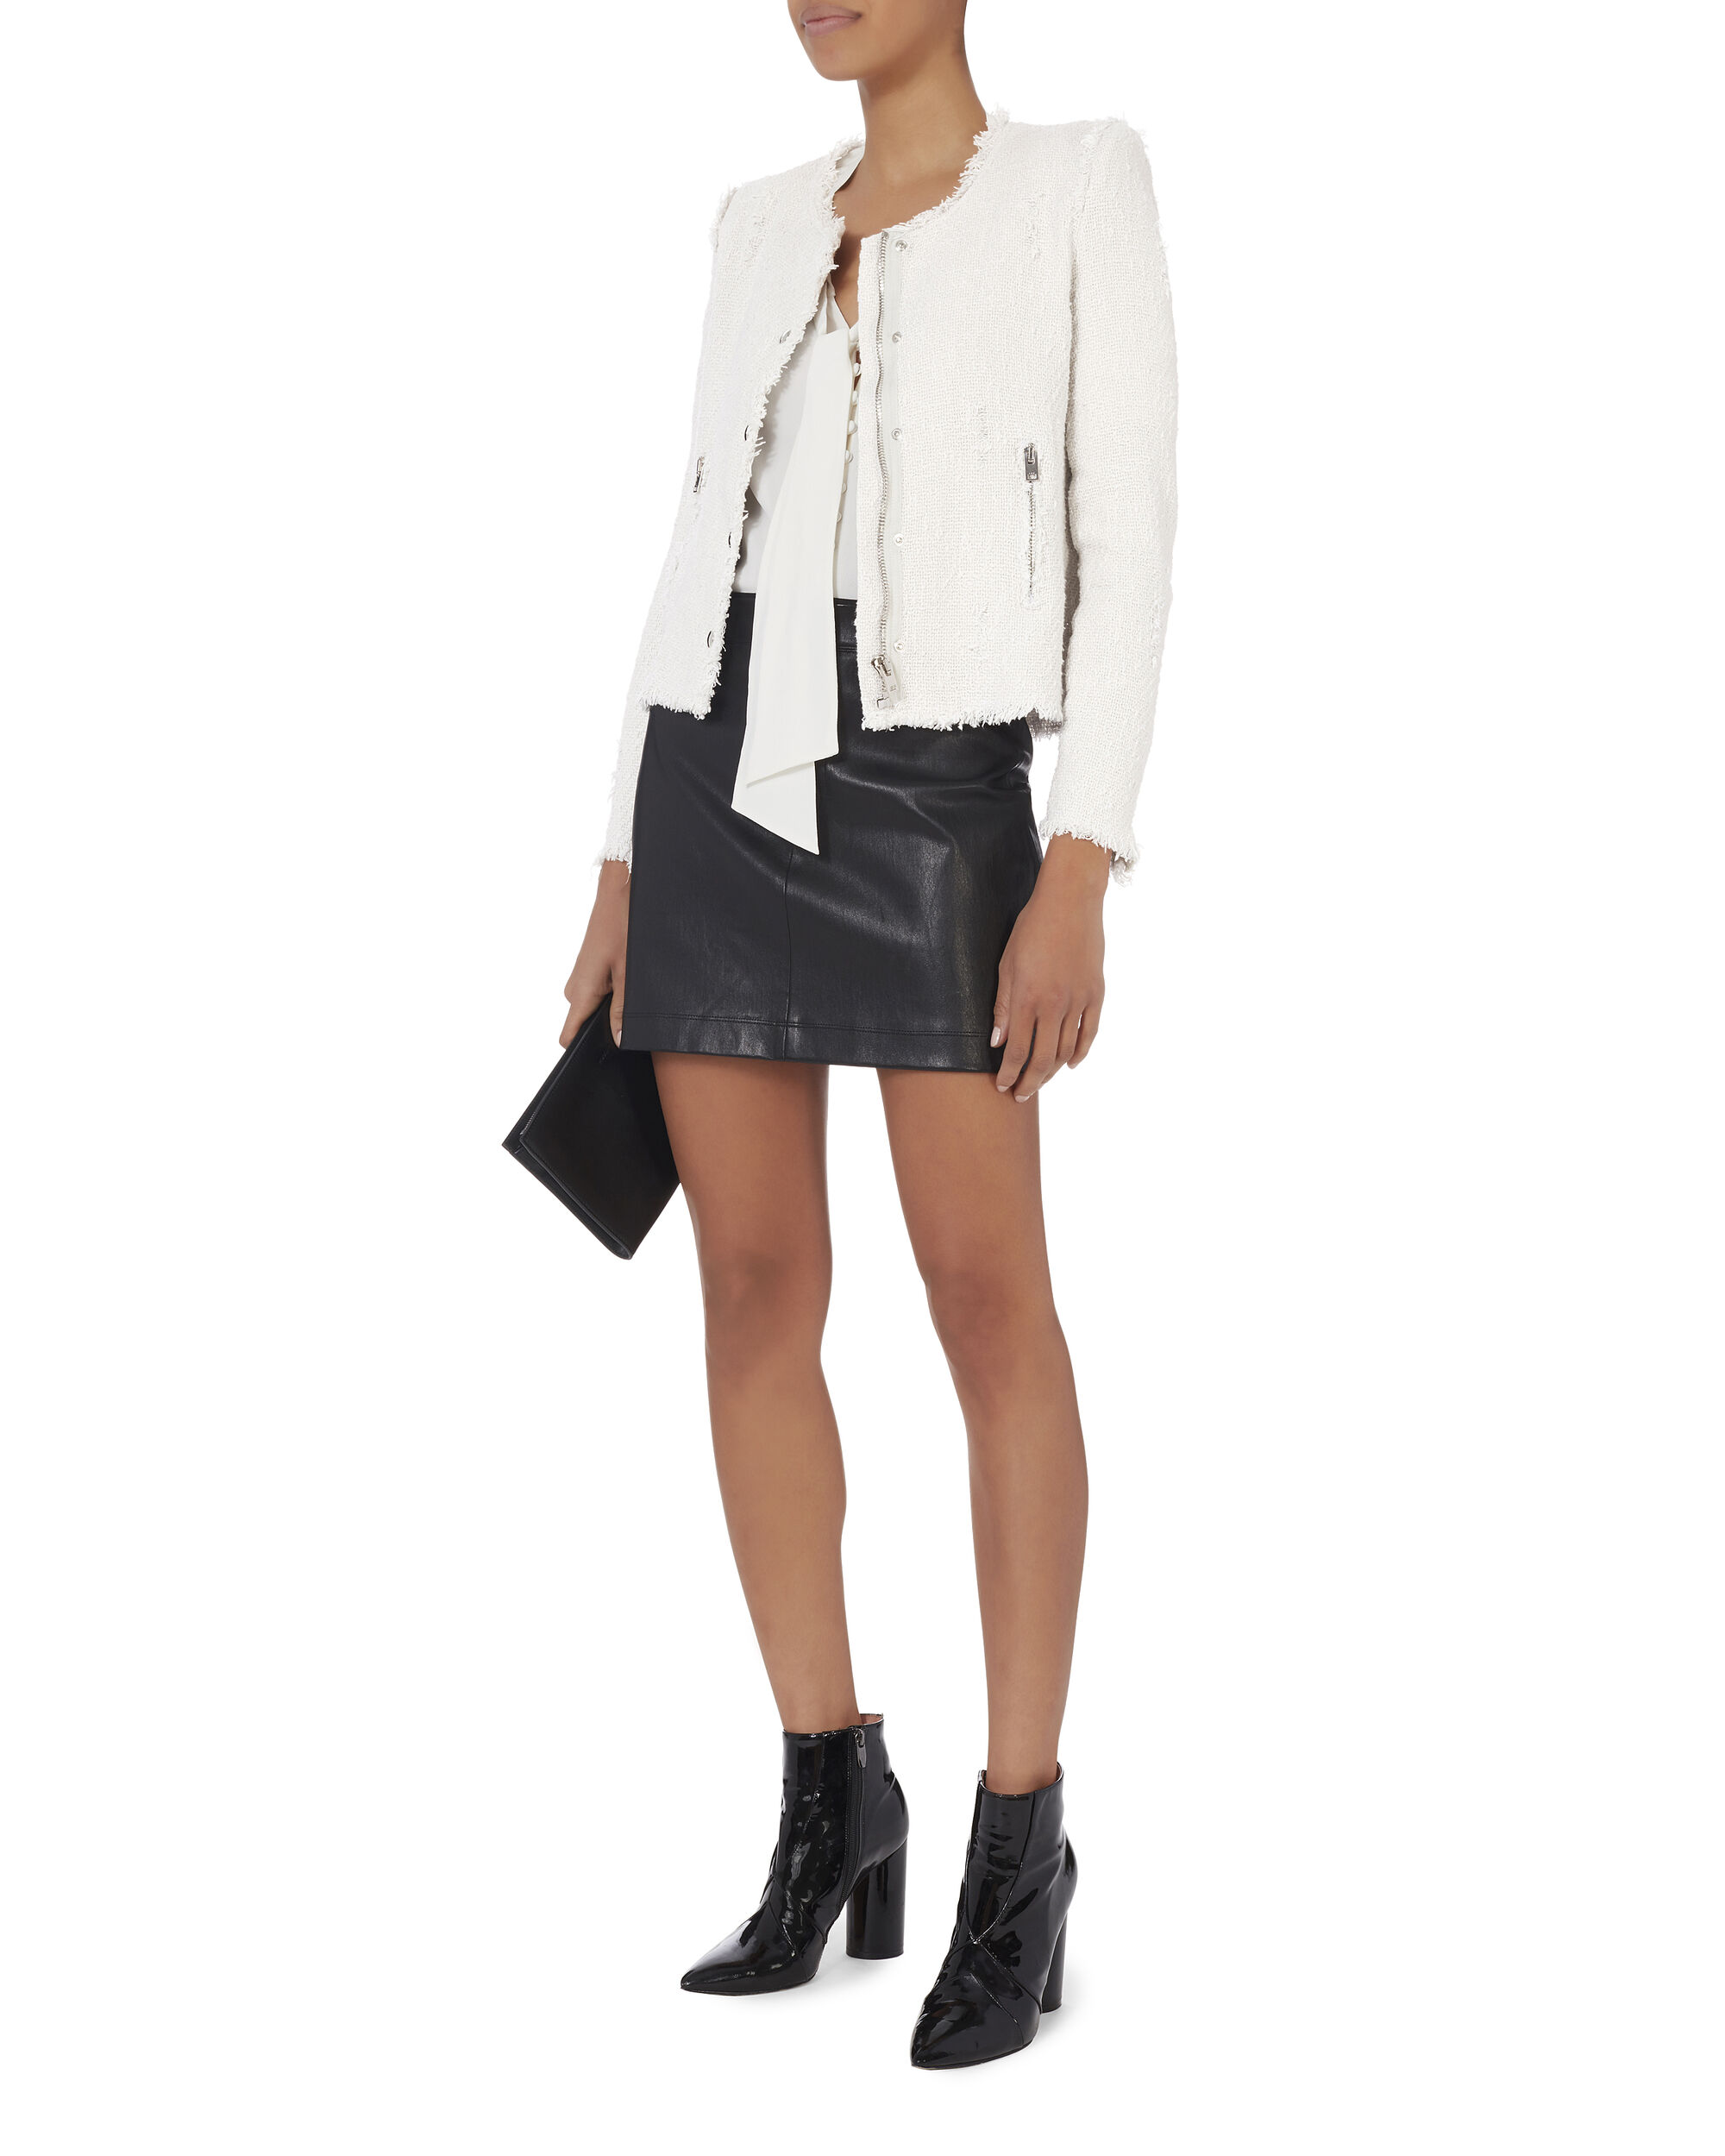 Agnette White Jacket, WHITE, hi-res